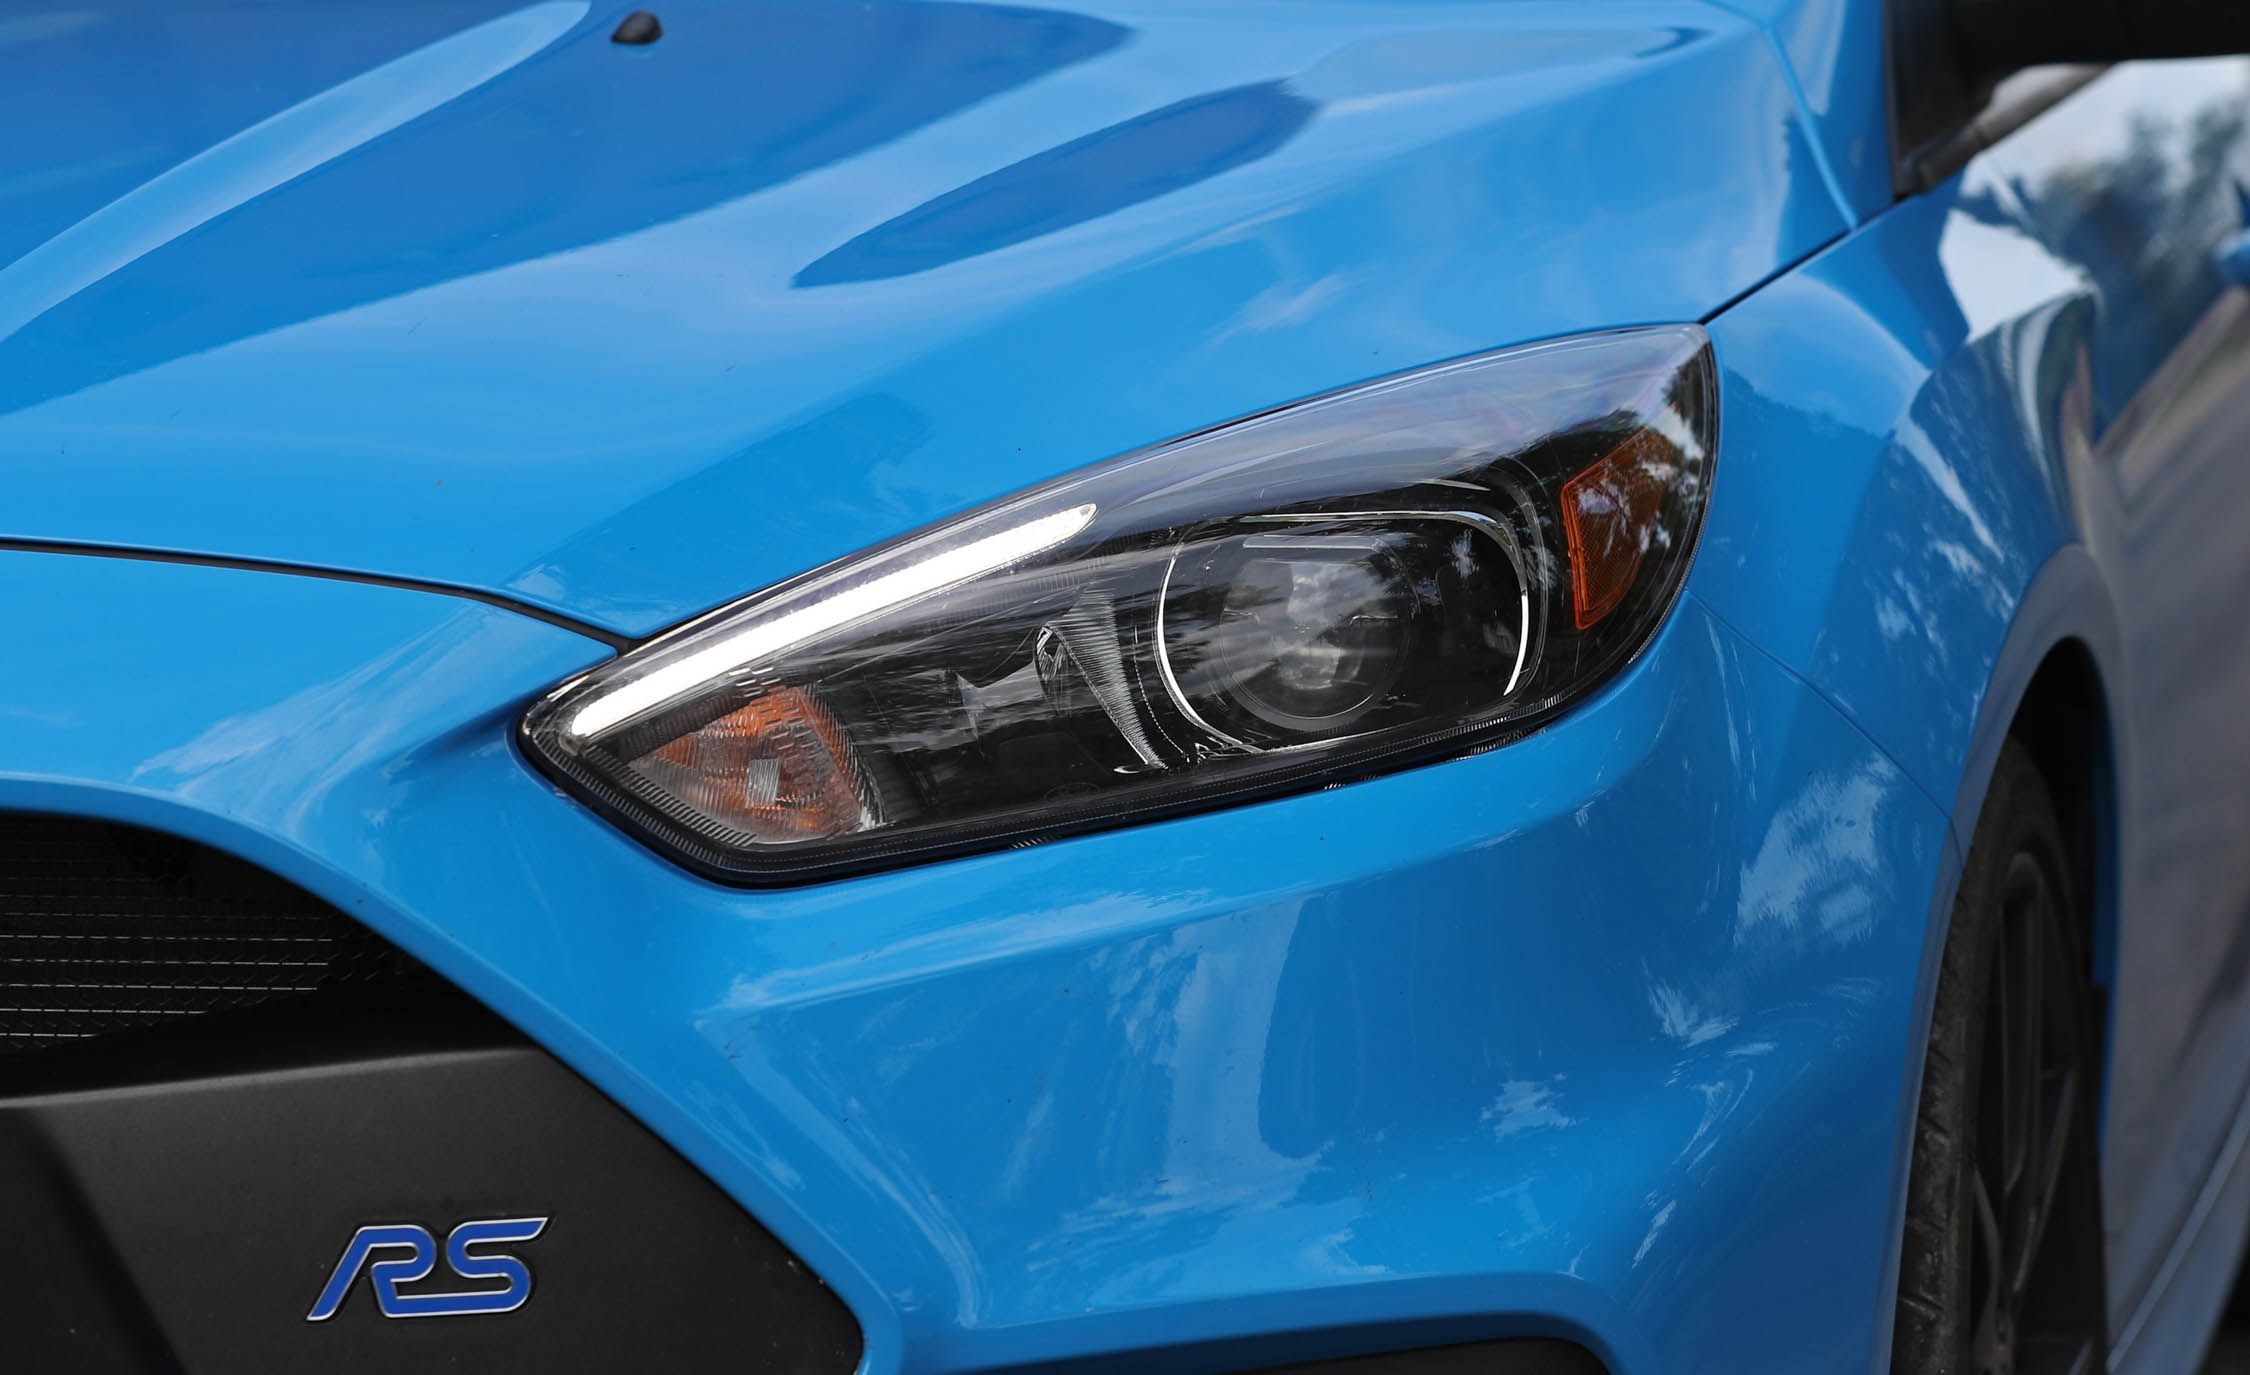 focus ford honda rs r versus price civic type reviews new